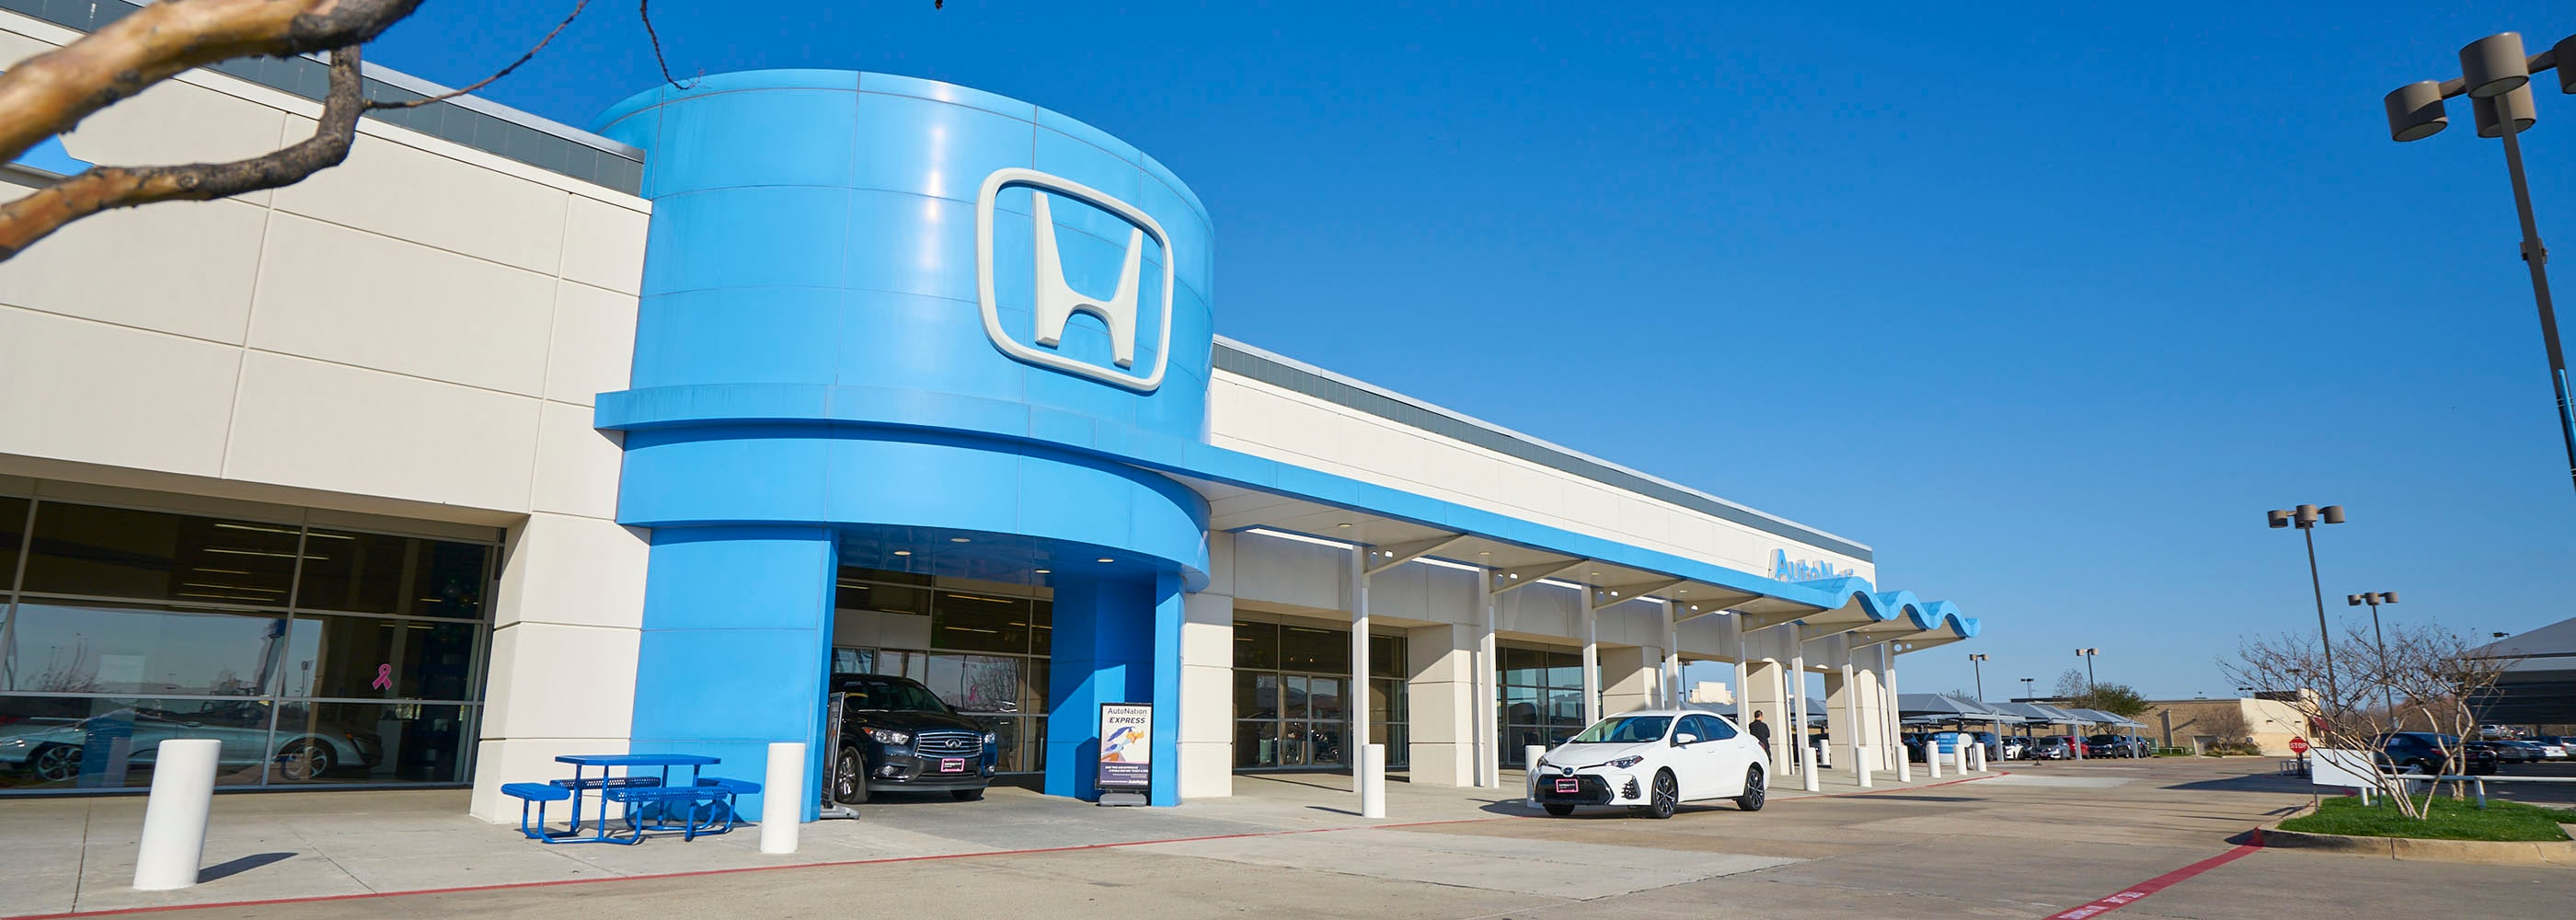 Current Offers At Autonation Honda Lewisville In Lewisville Tx